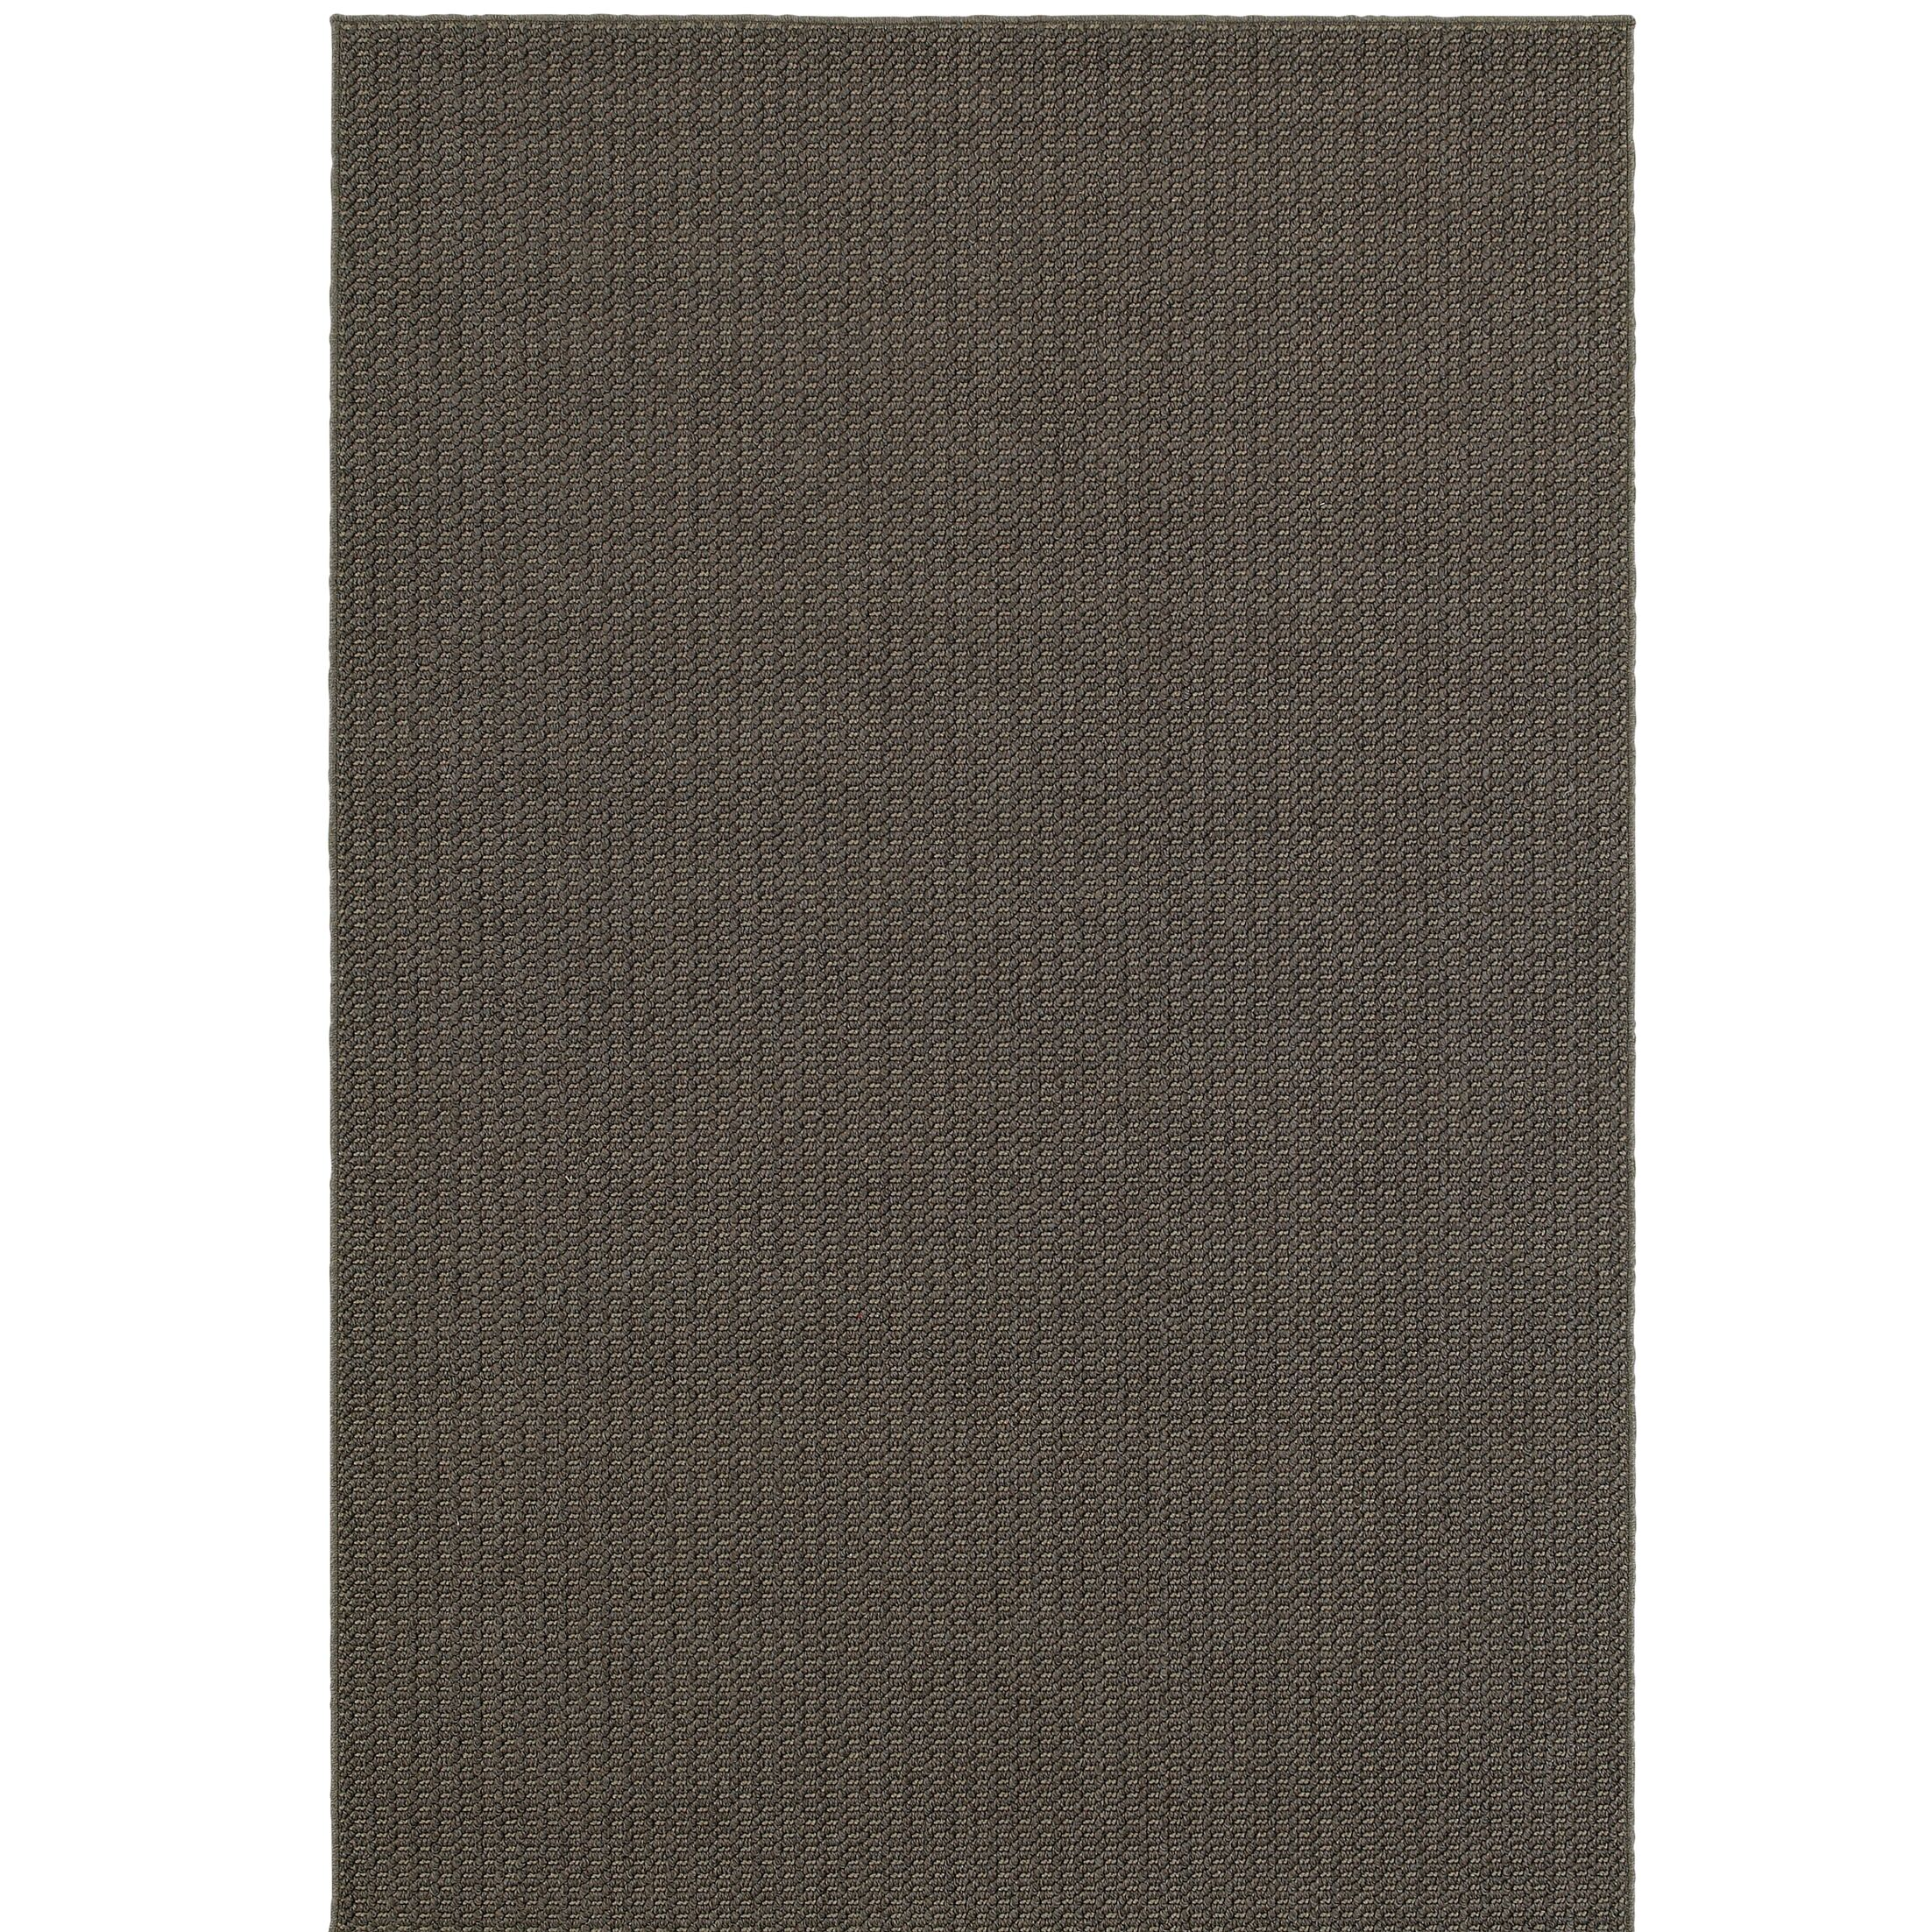 Carondelet Gray Outdoor Area Rug Rug Size: Rectangle 3'3